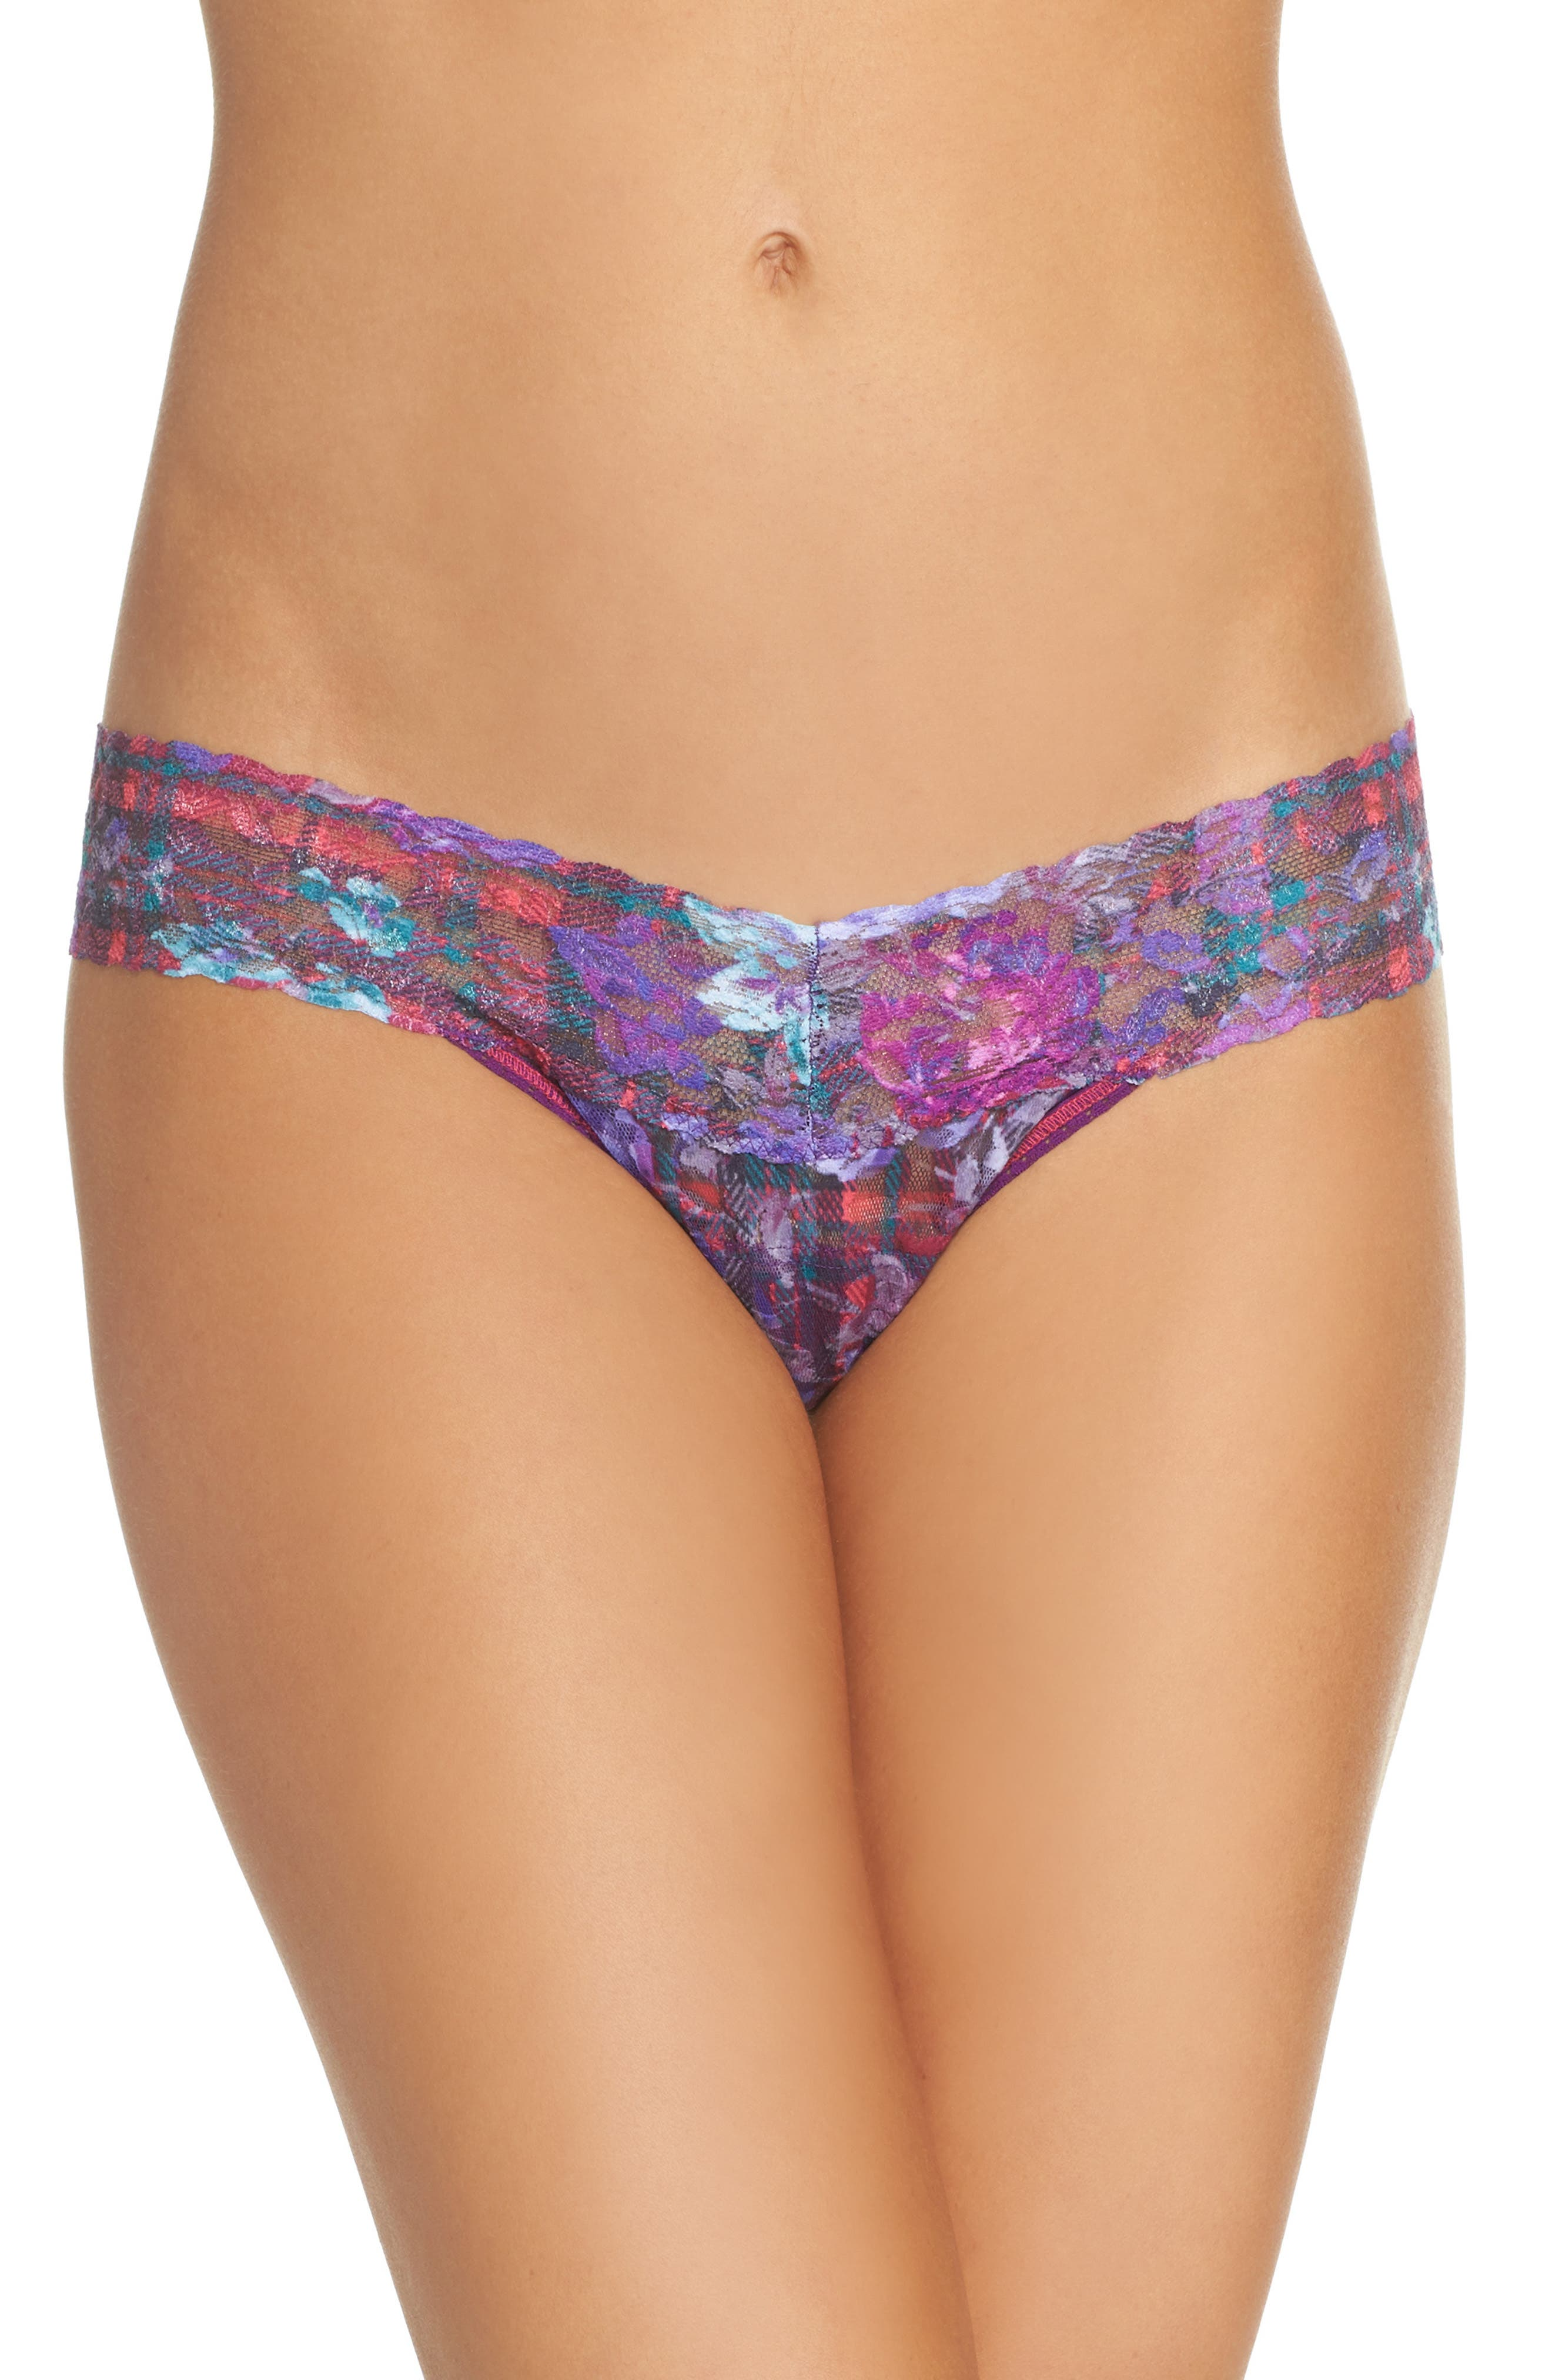 Highland Garden Low Rise Thong,                         Main,                         color, Multi